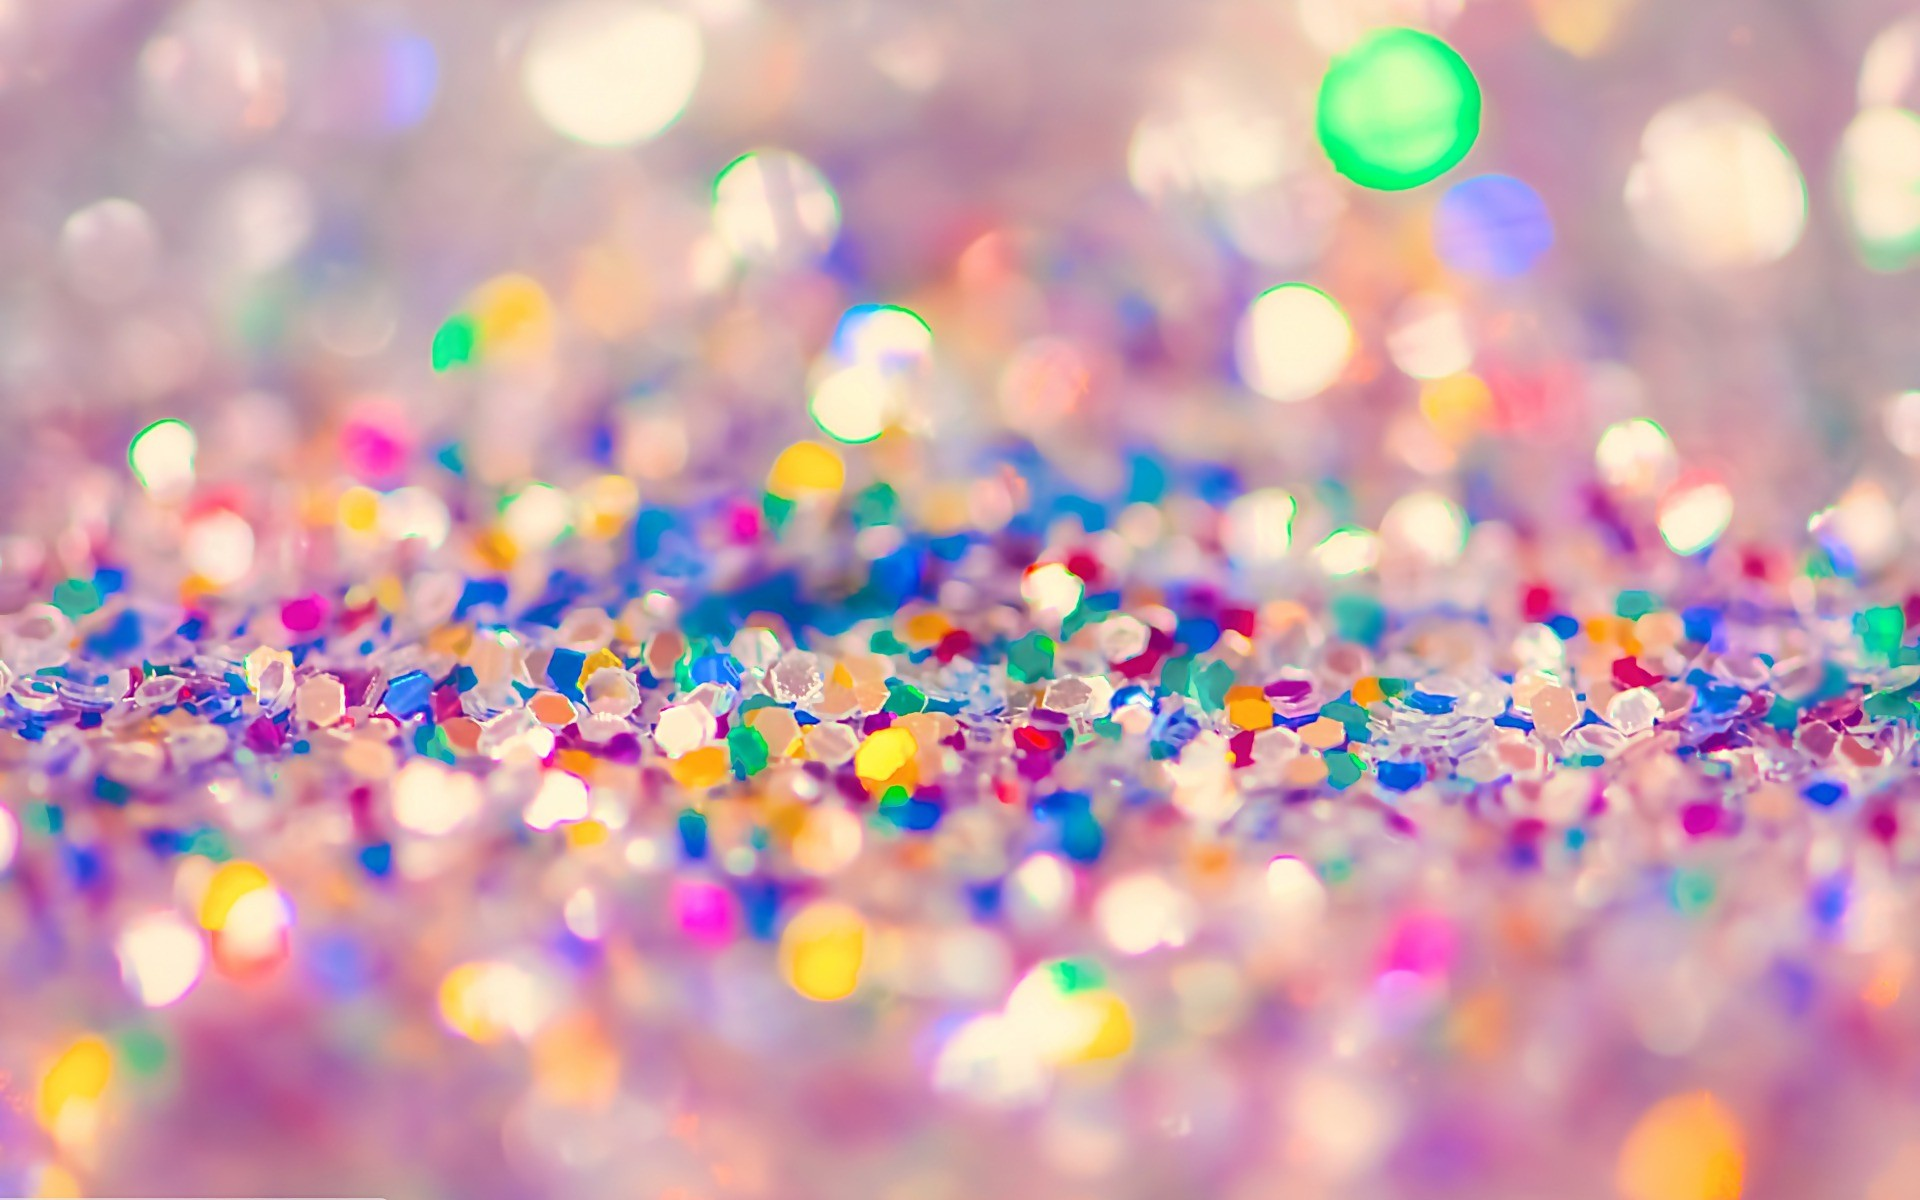 SPARKLE WALLPAPERS FREE Wallpapers & Background images .